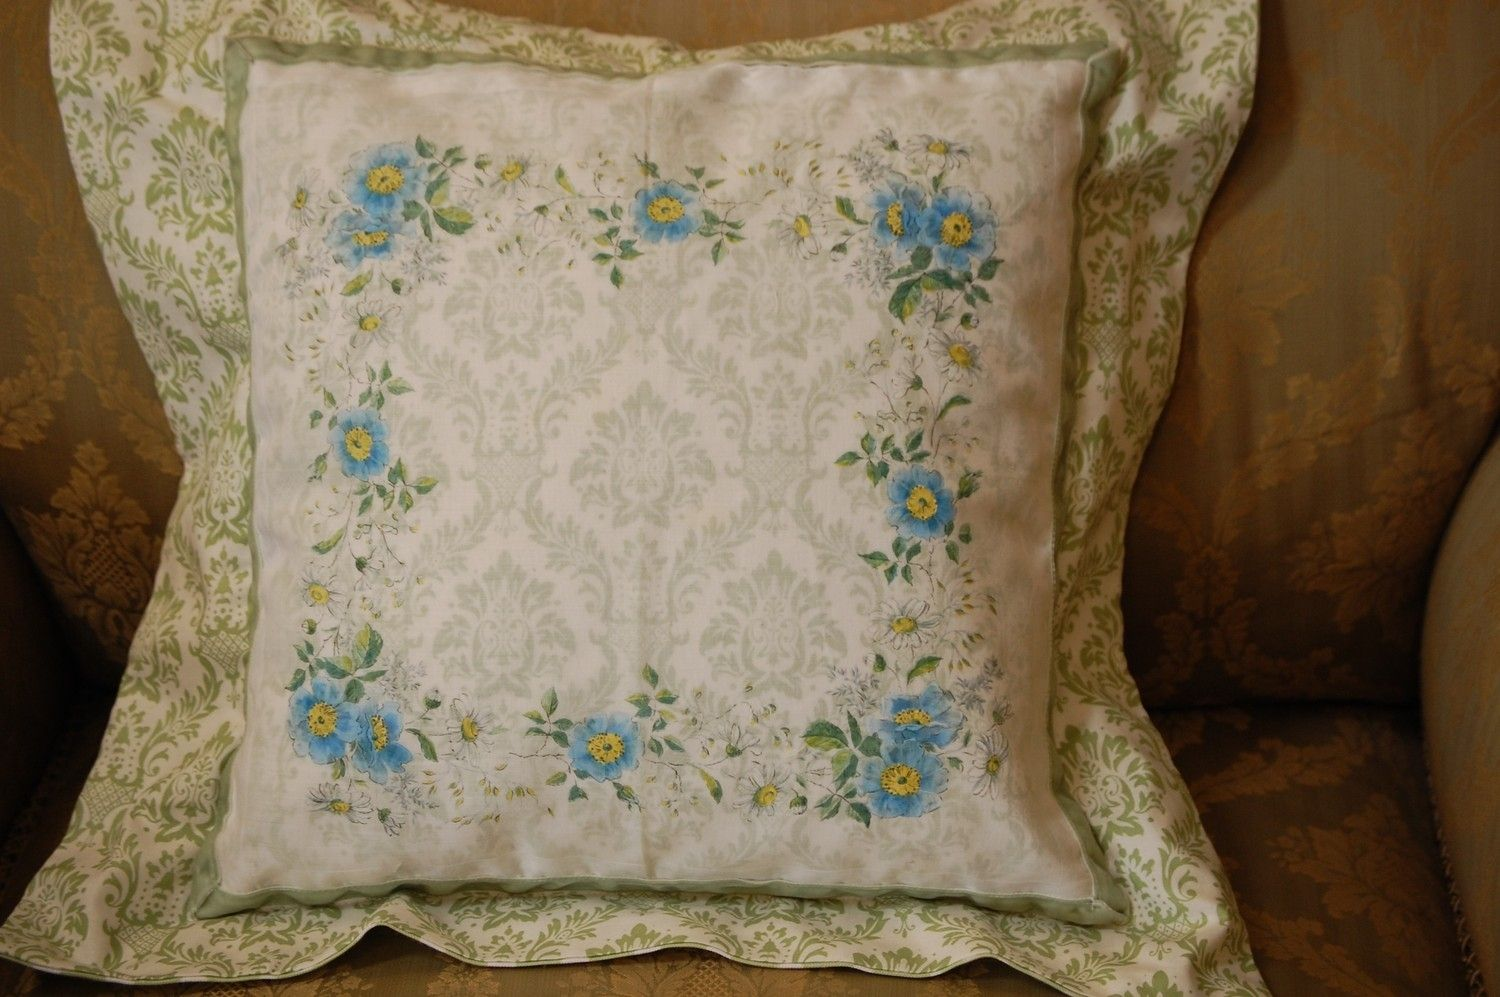 Shabby Chic Blue Pillows : Hand Made Shabby Chic Pillow With Soft Blue Hankie by Petunia Rose Designs CustomMade.com